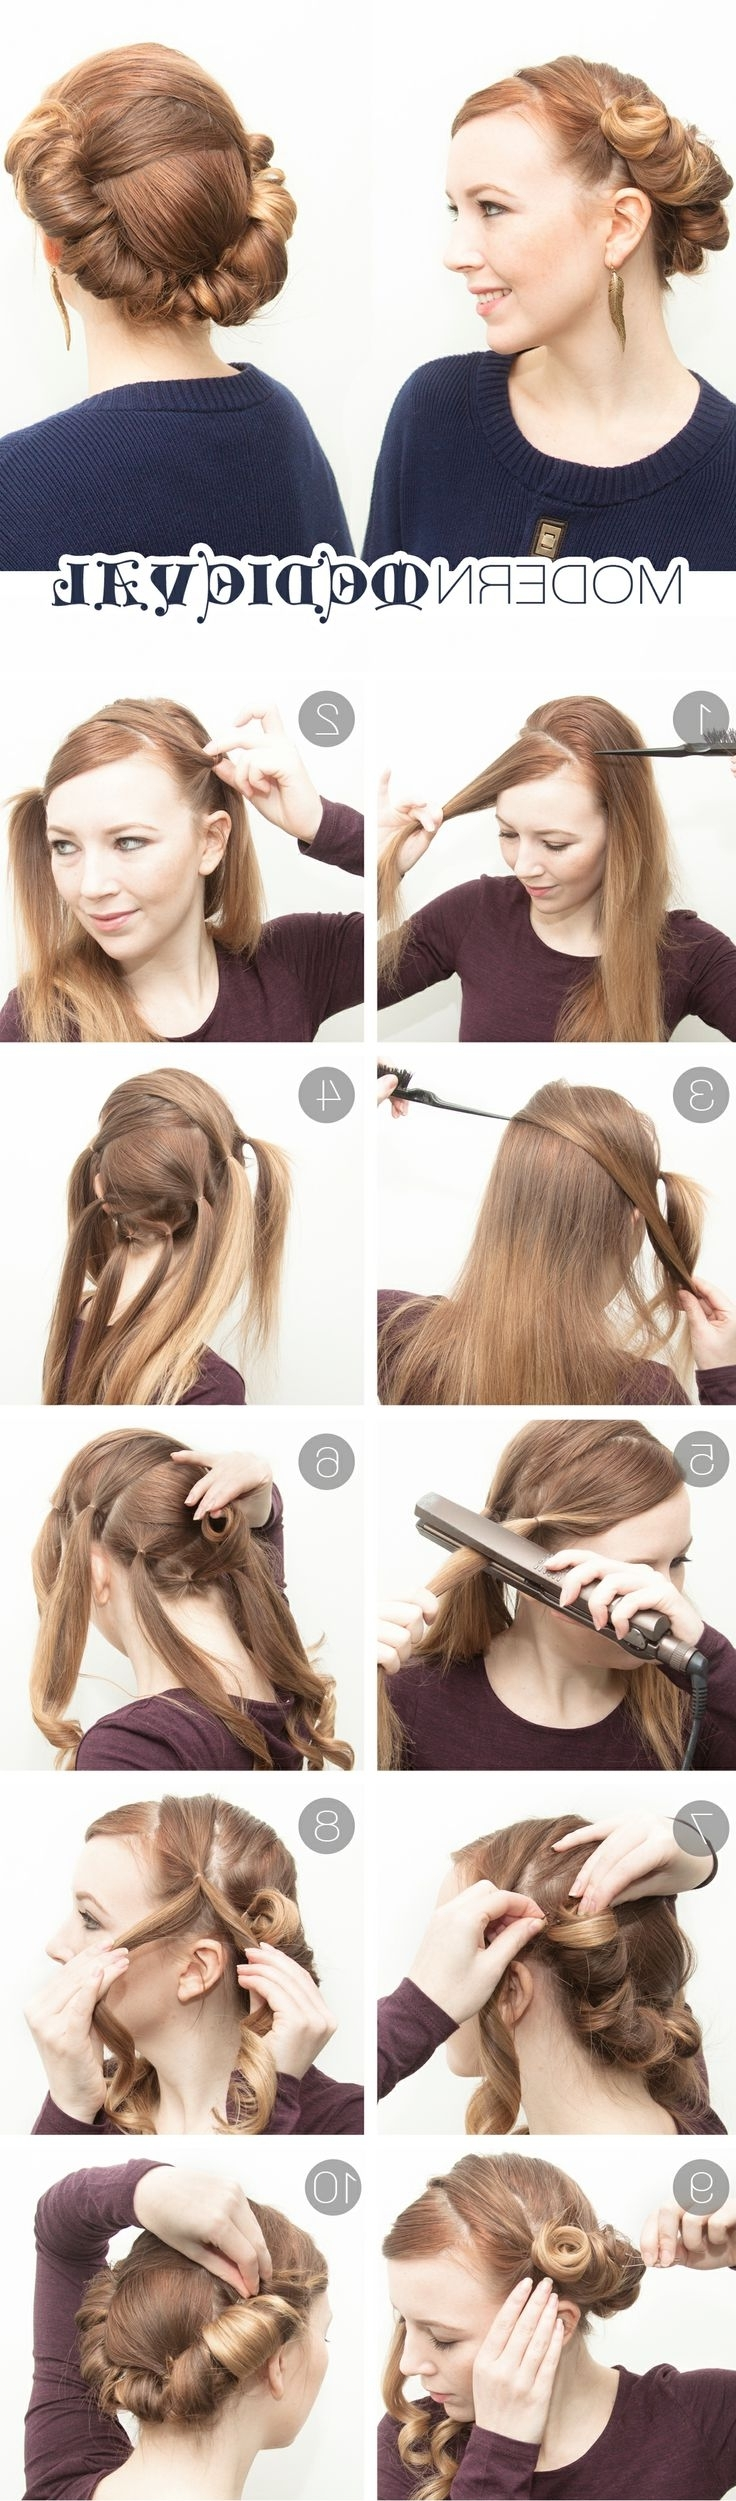 9 Genius Hairstyles You Can Do With A Flat Iron – Sheknows Hairstyles For Medium Hair With Straightener